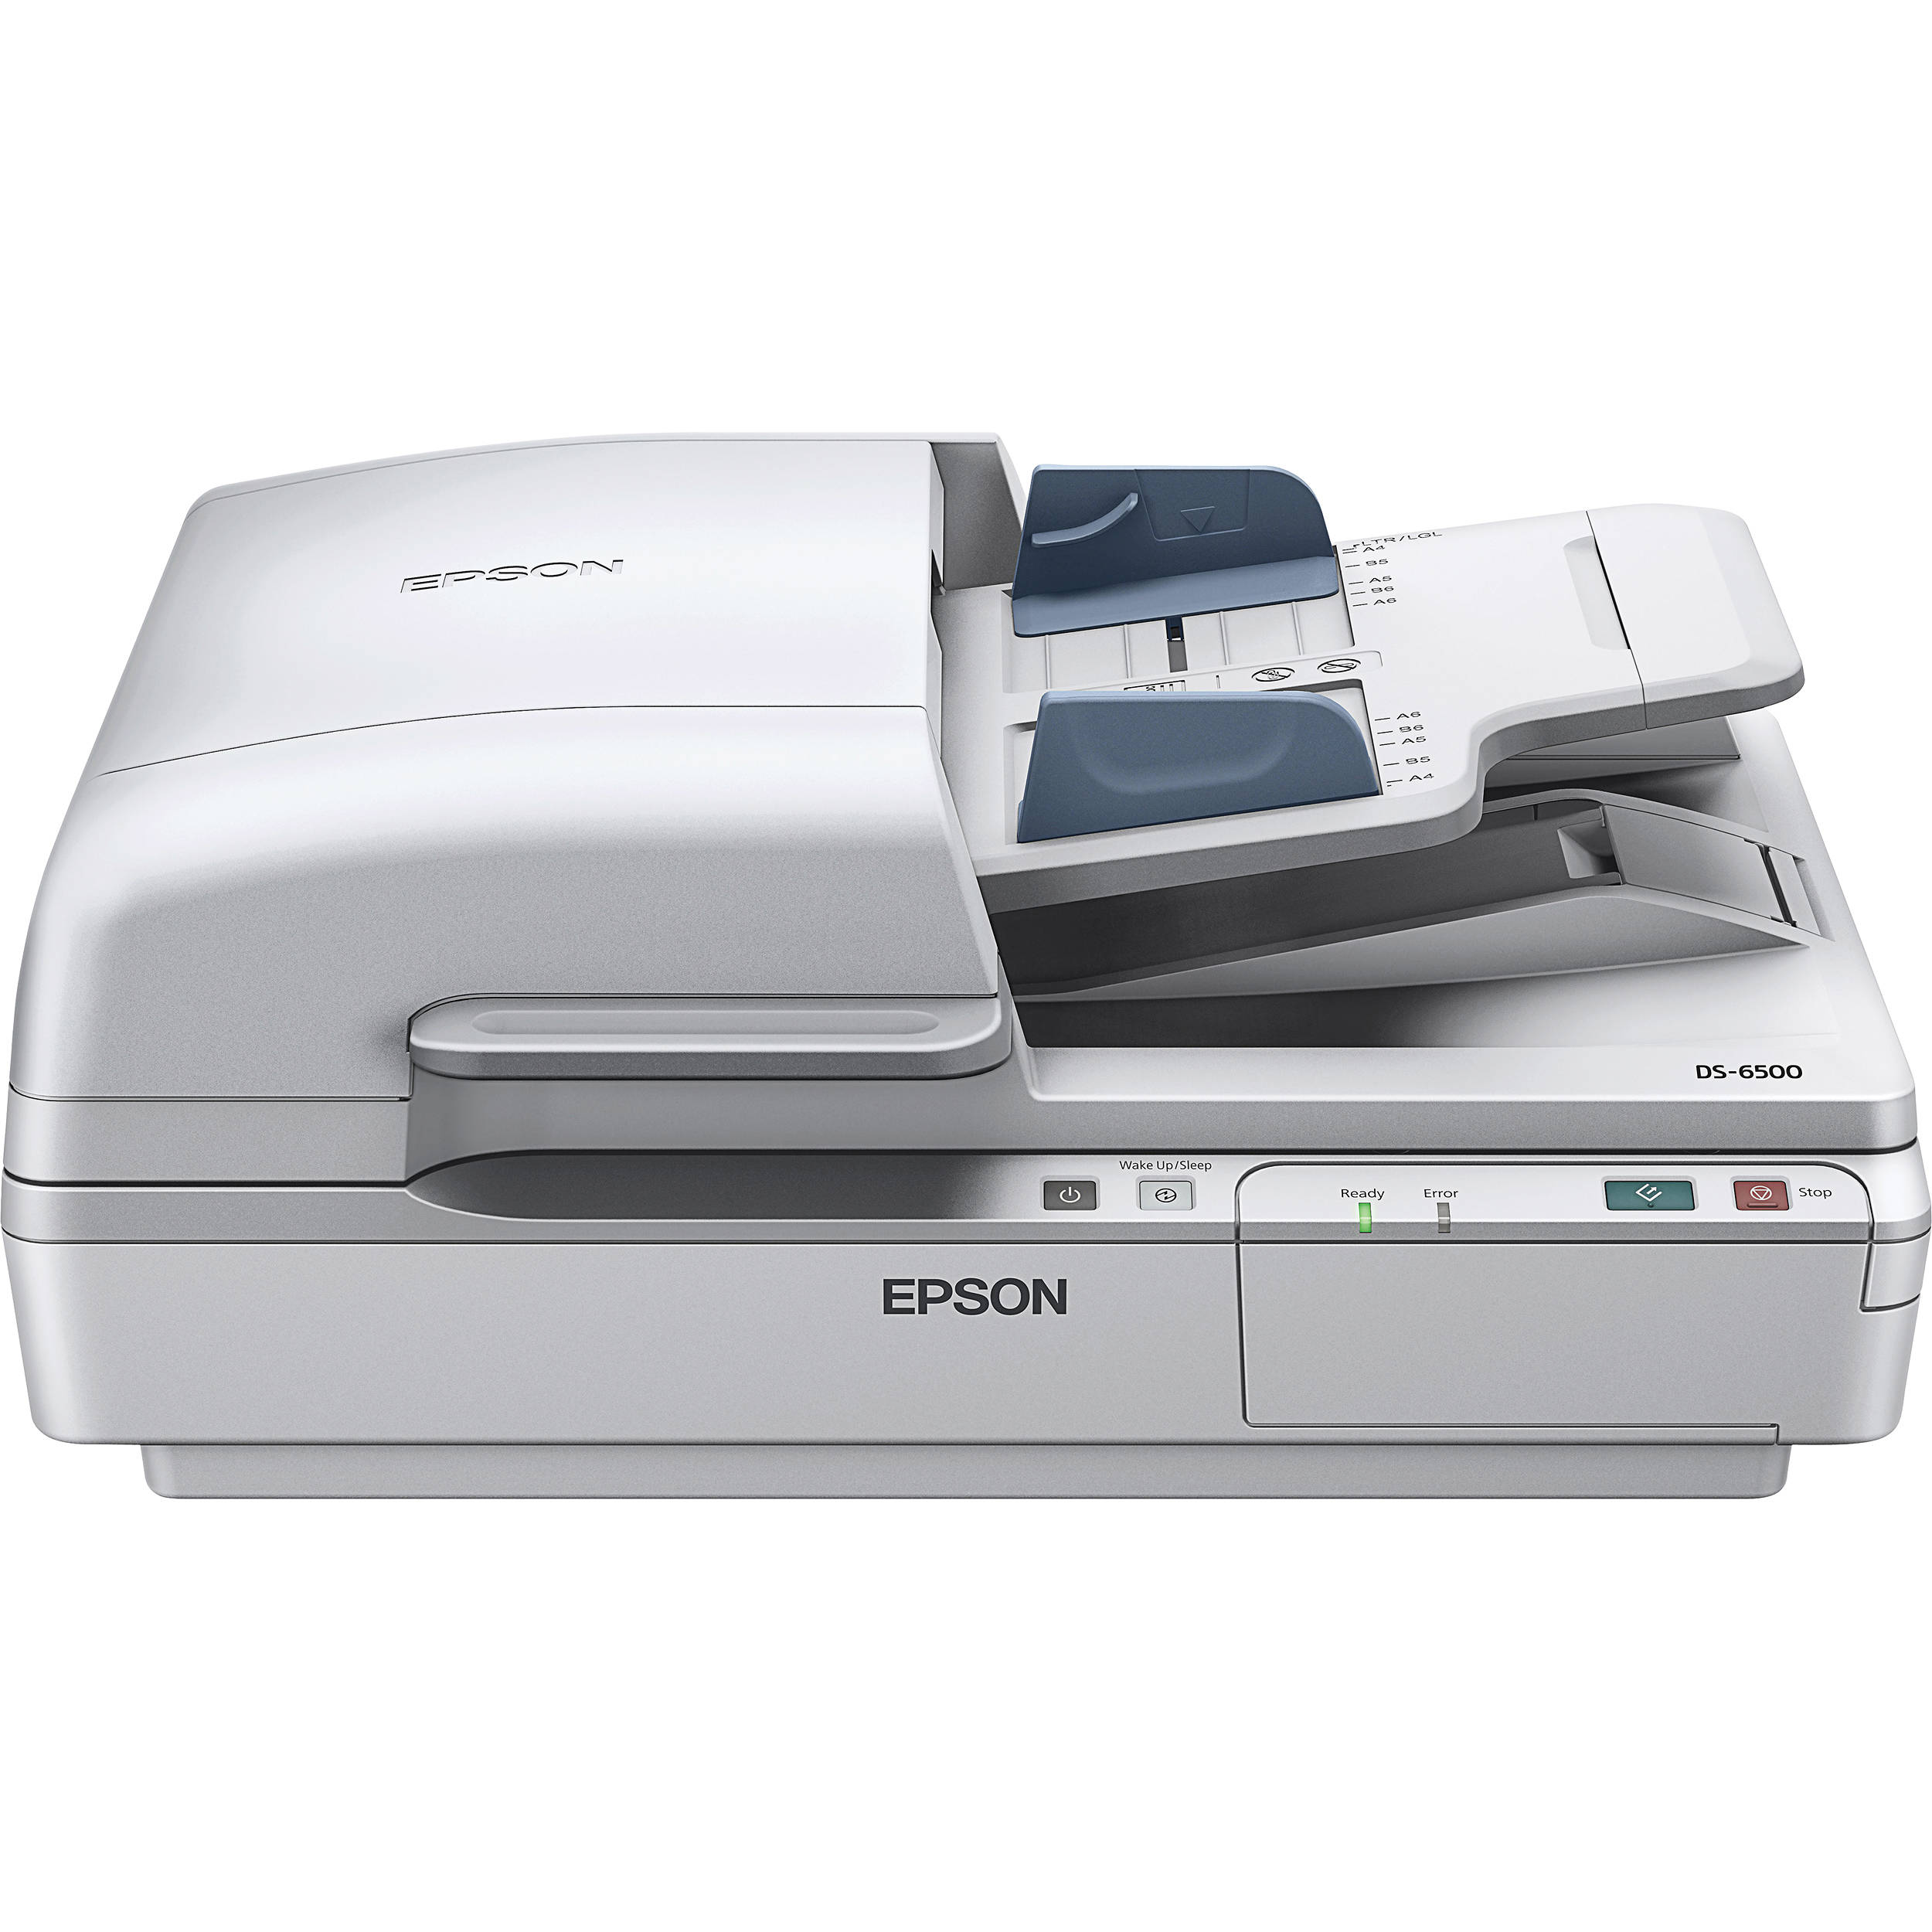 Epson GT-2500 Scanner ICM Color Profile Module Drivers for Mac